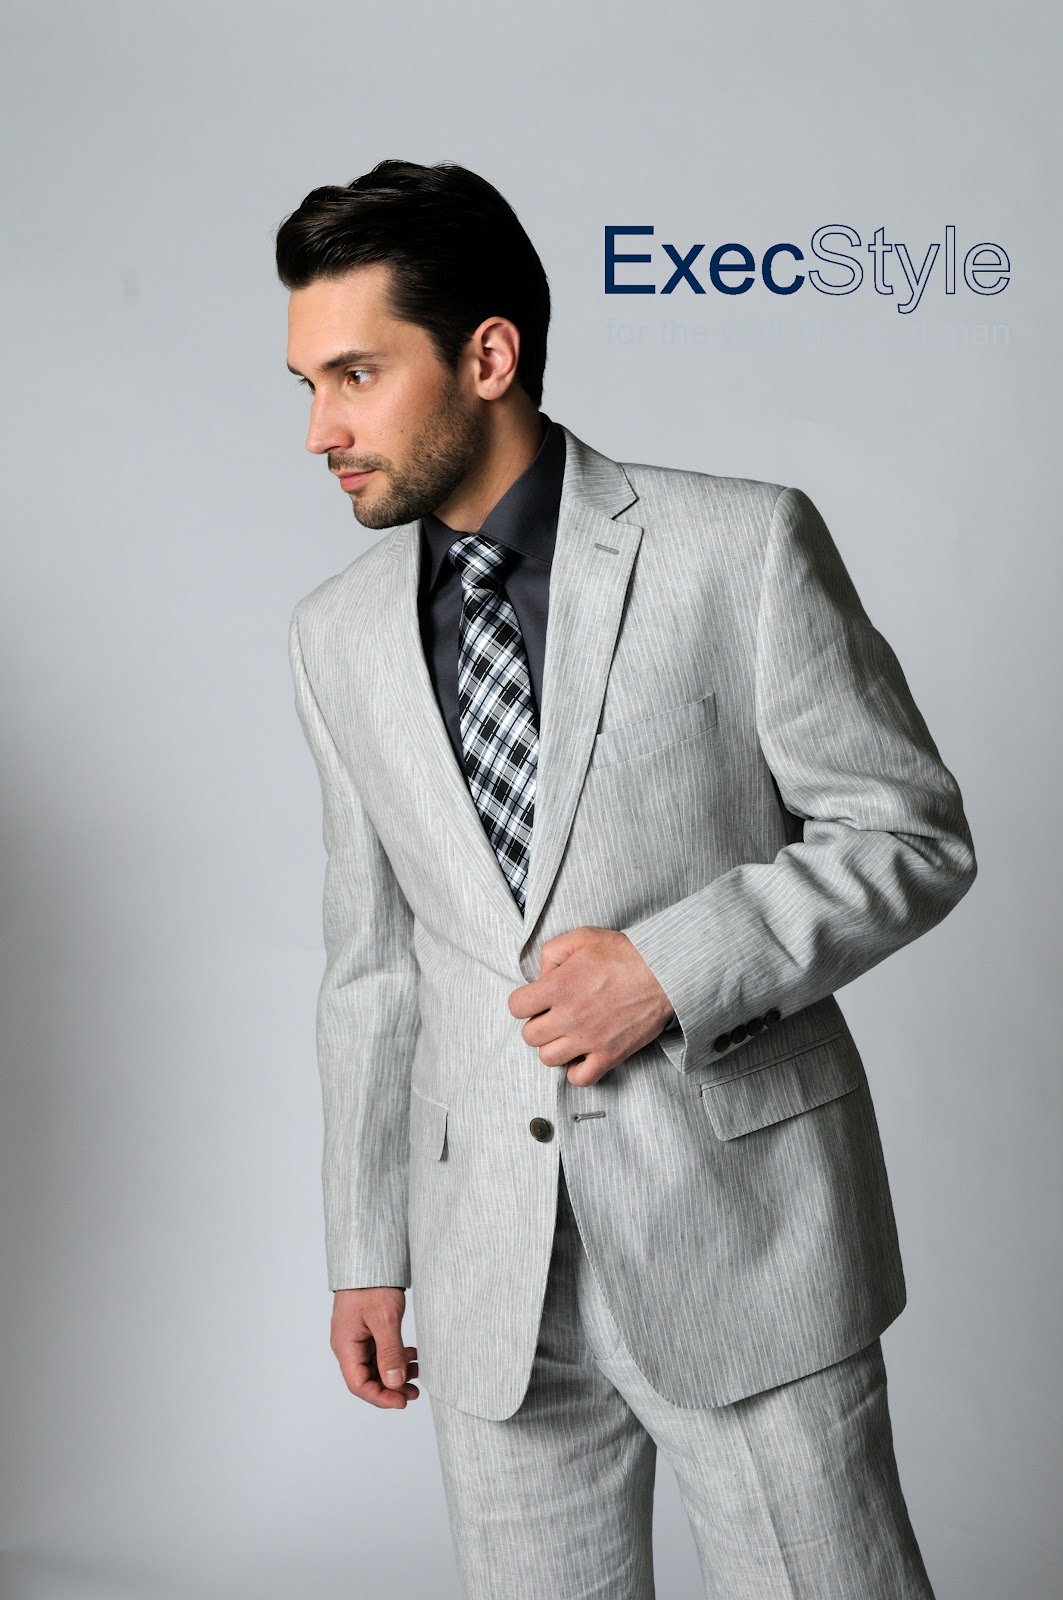 ExecStyle.com - Fashion Guide for the Well-Dressed Man